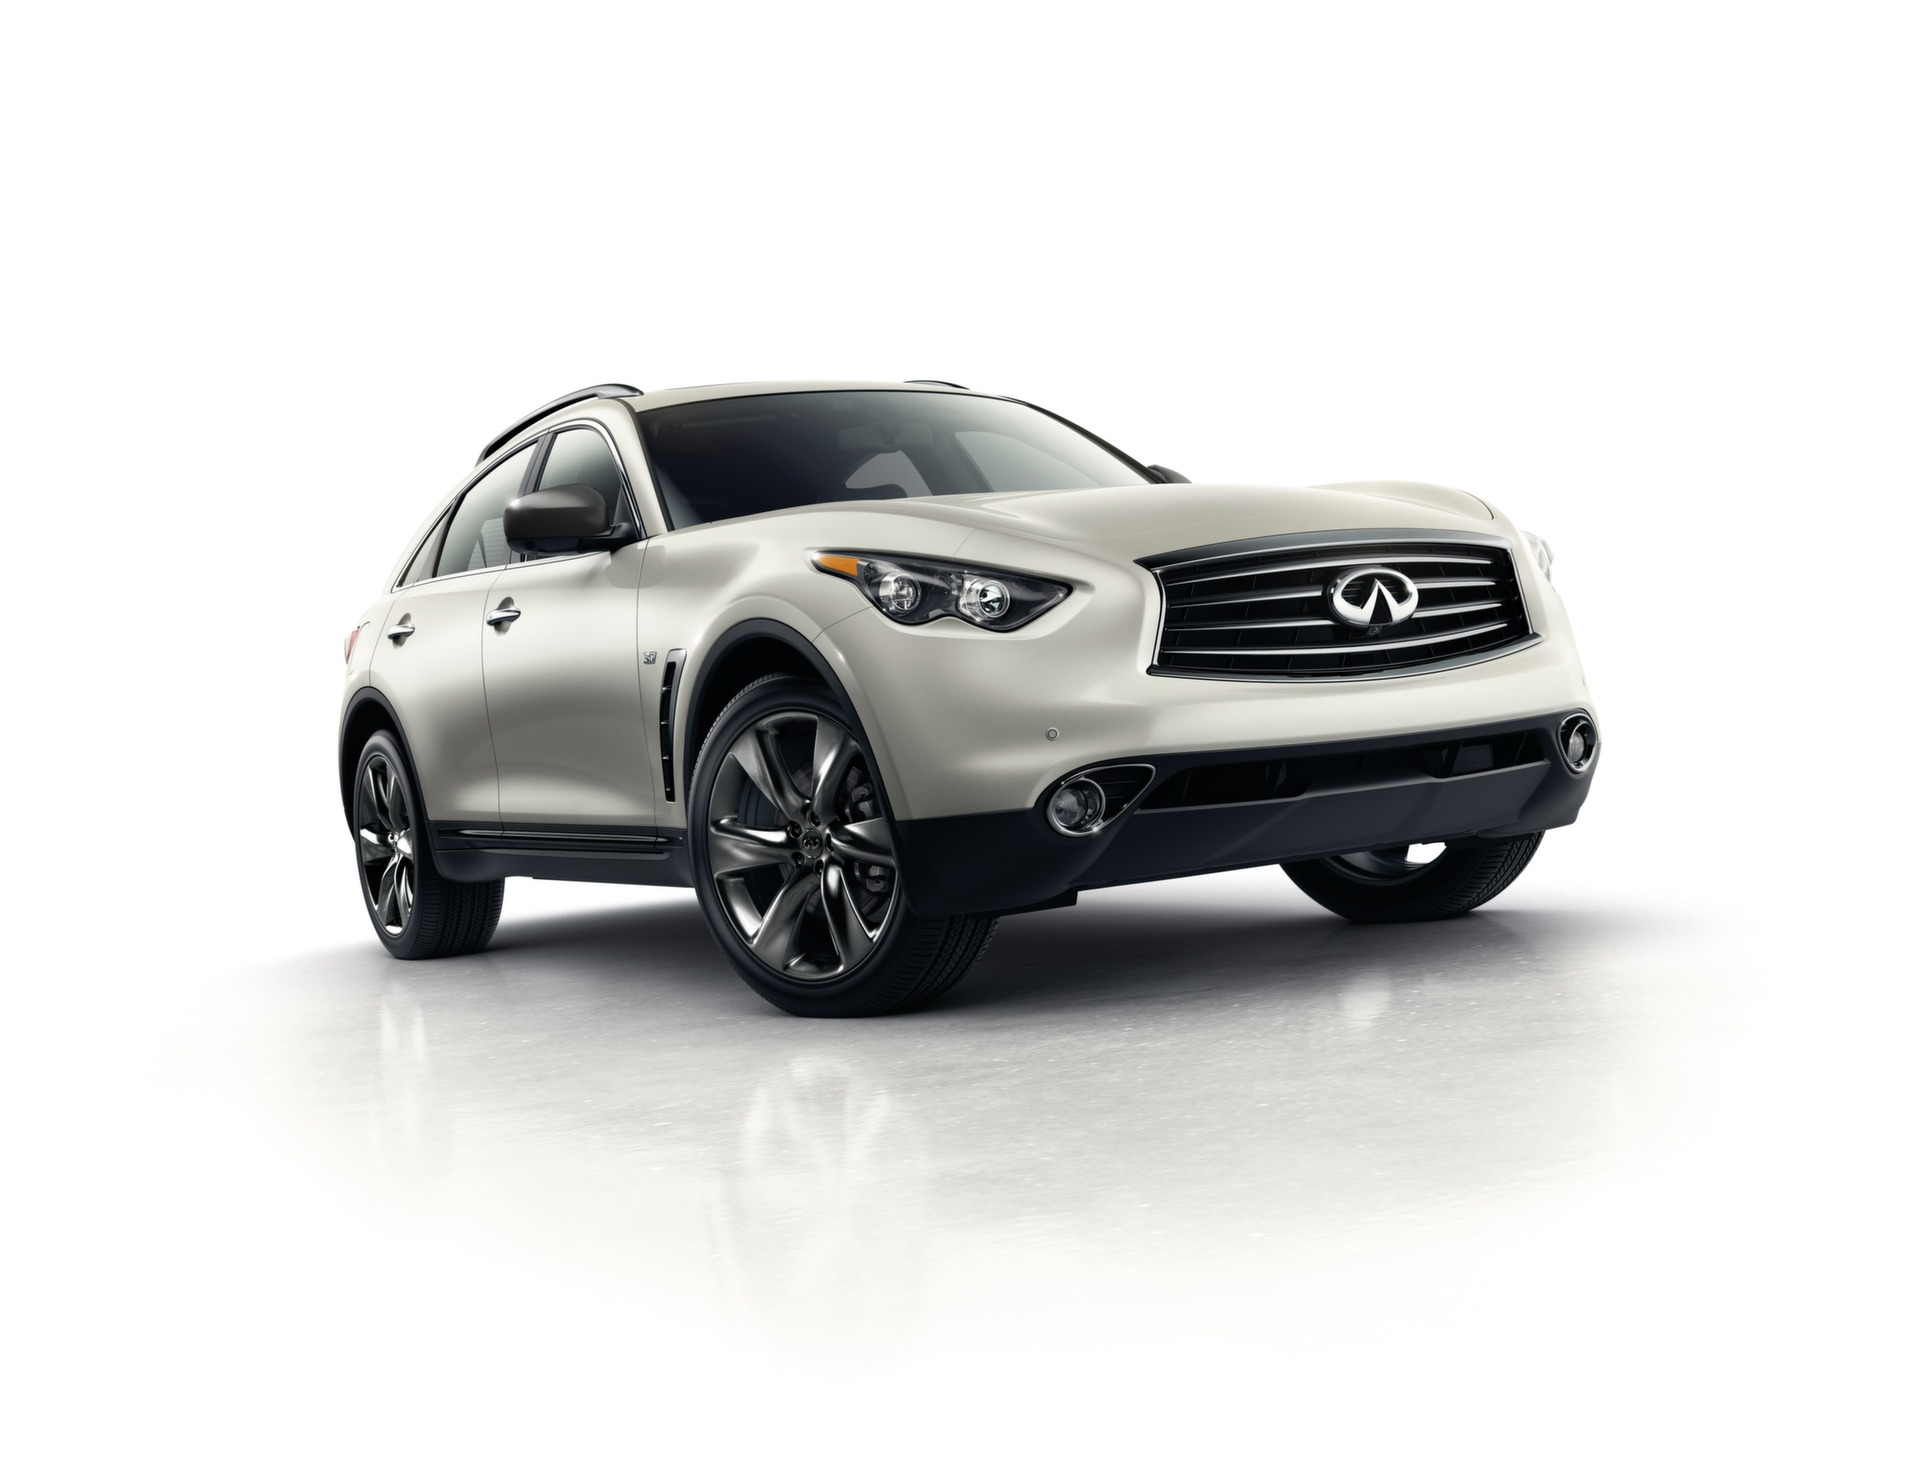 2016 INFINITI QX70 Review Ratings Specs Prices and s The